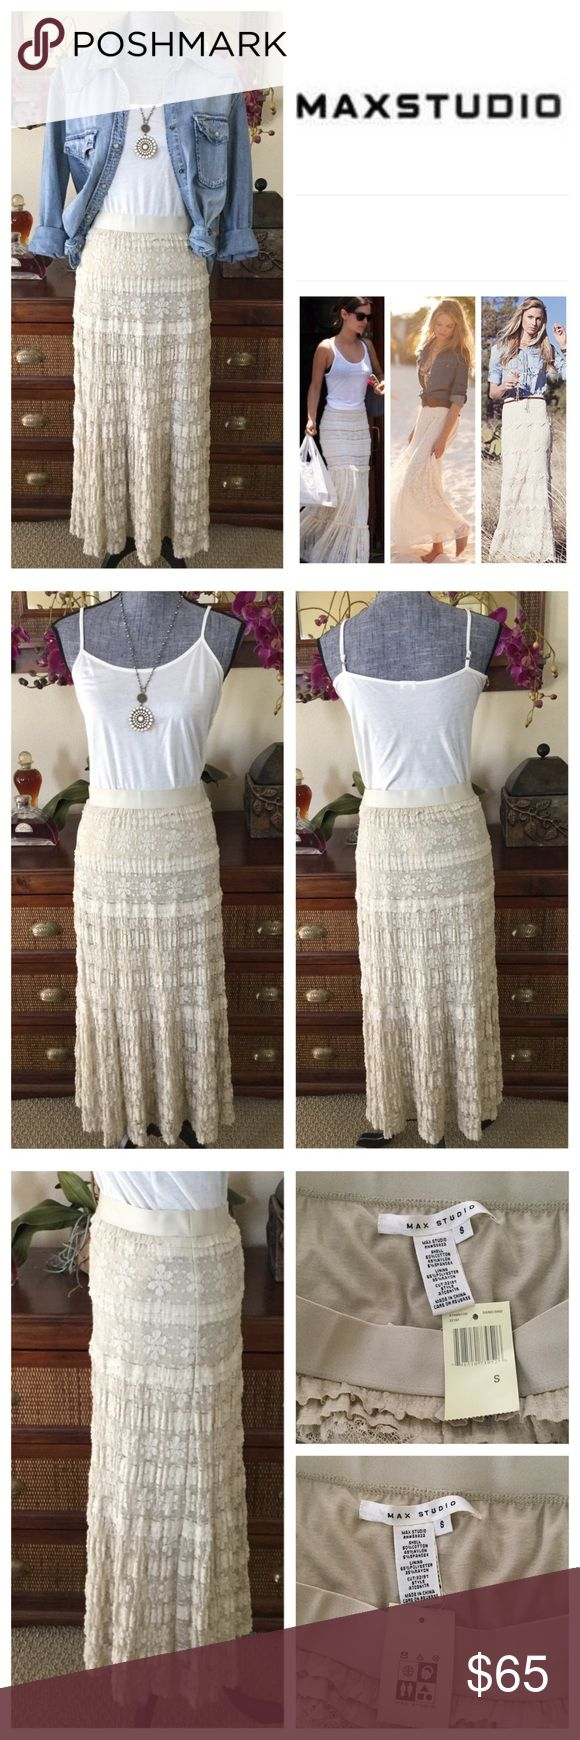 "Max Studio Lace Maxi Skirt.  NWT. Max Studio Lace Maxi Skirt, 50% cotton, 45% nylon, 5% spandex, machine washable, 28"" elasticized waistband which stretches up to 32"", 34"" length, tiered lace maxi skirt in Sand color, attached lining, measurements are approx.  NO TRADES Free People Skirts Maxi"